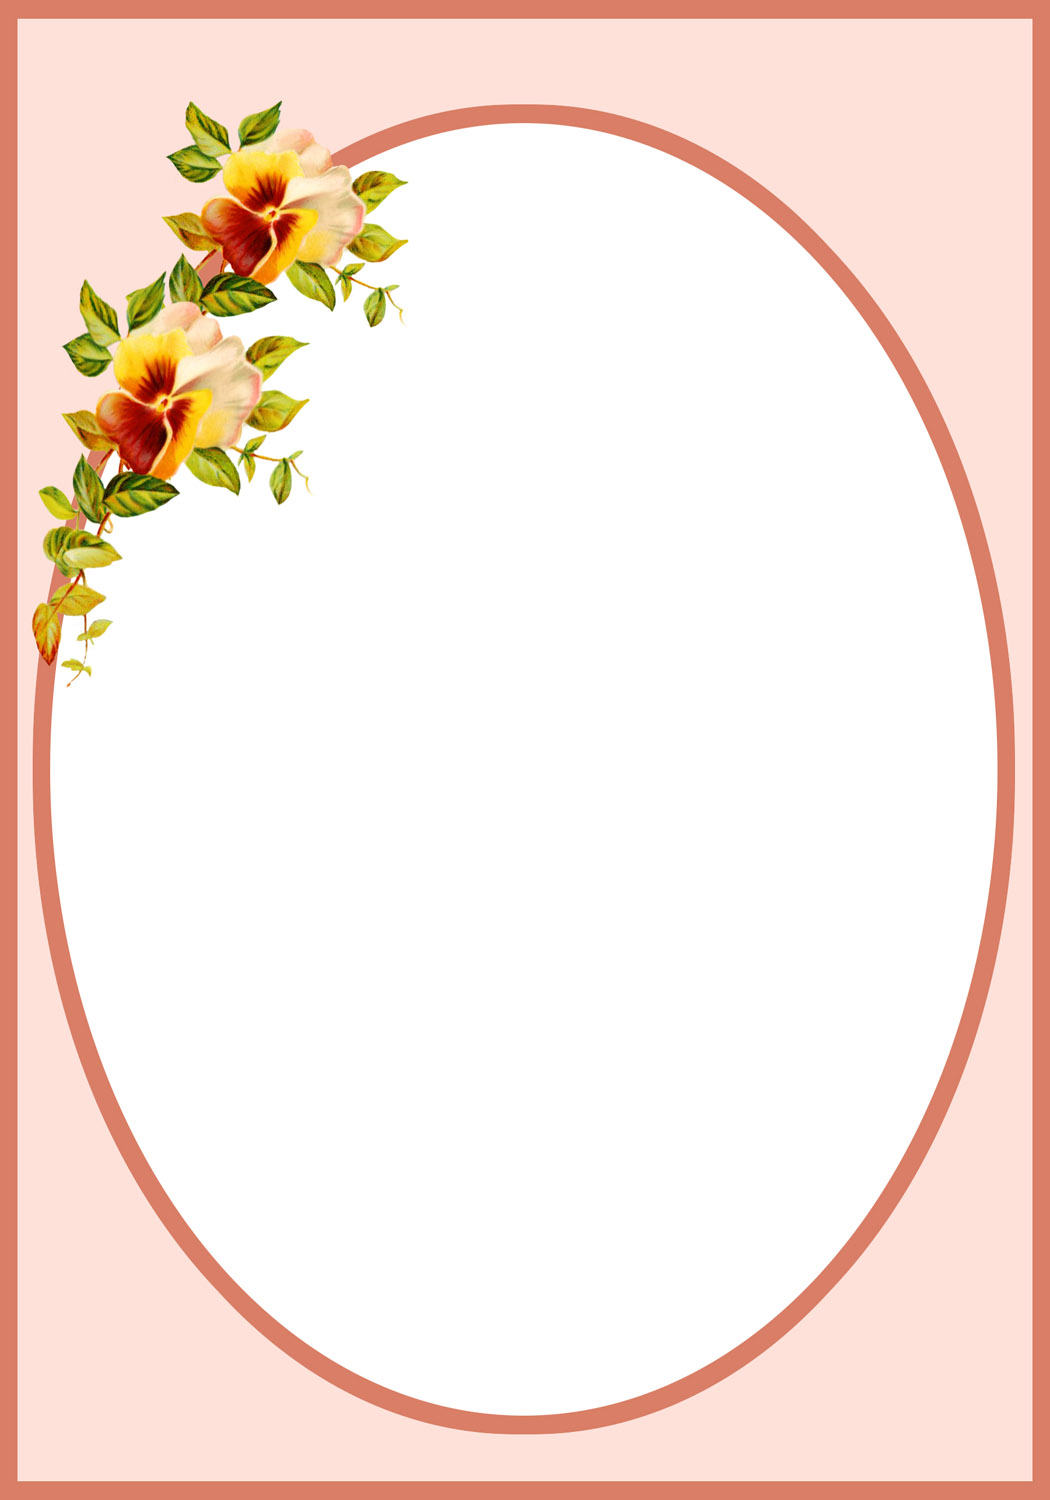 Flower borders and frames beautiful flower frame pansy frame viol flower frame free border templates with pansies izmirmasajfo